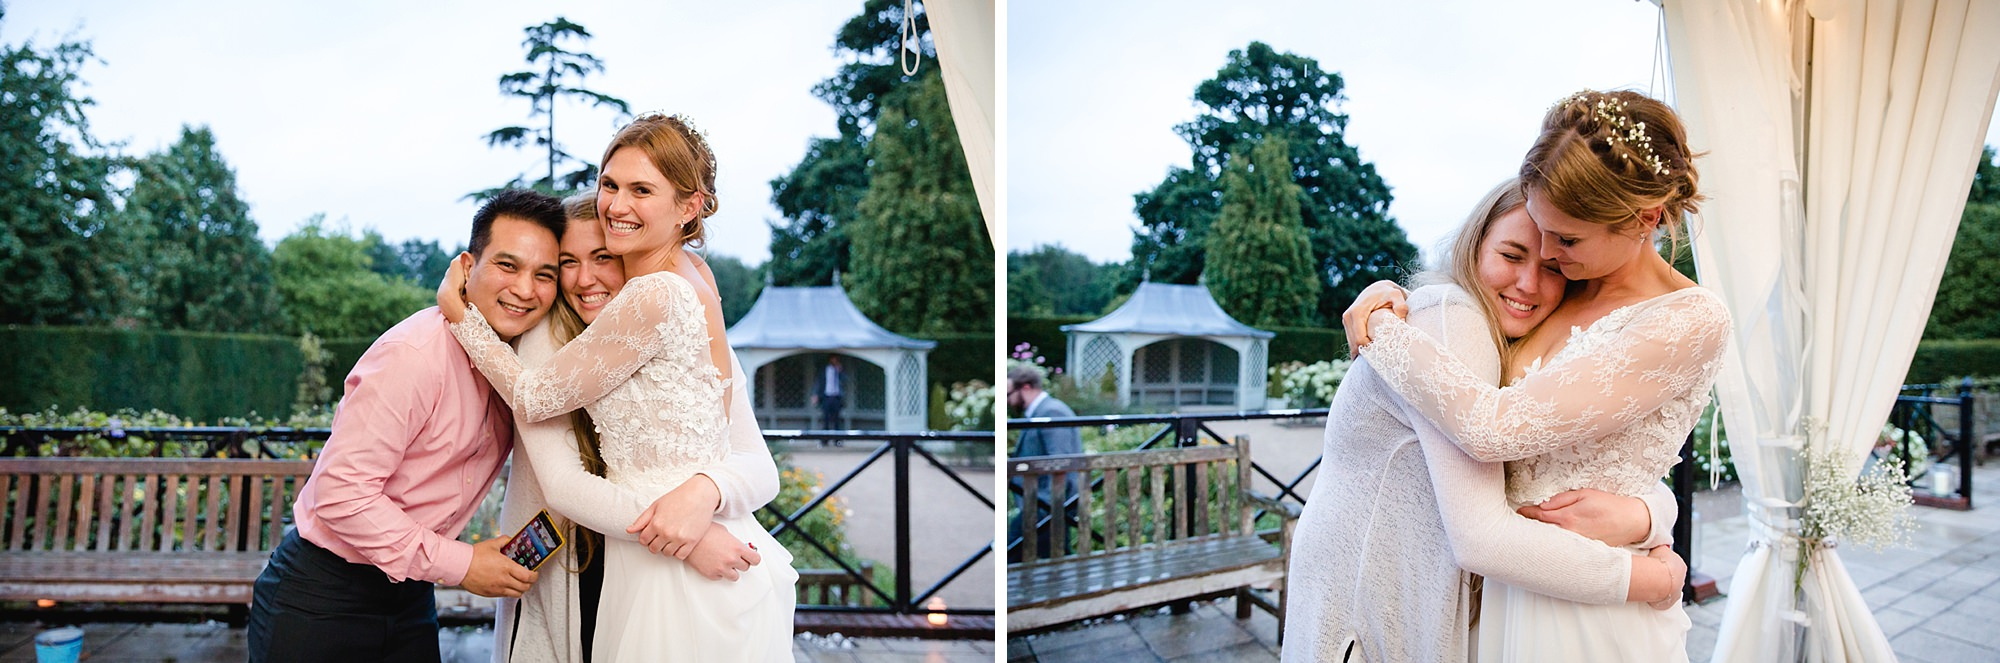 Marks Hall Estate wedding photography bride and guests